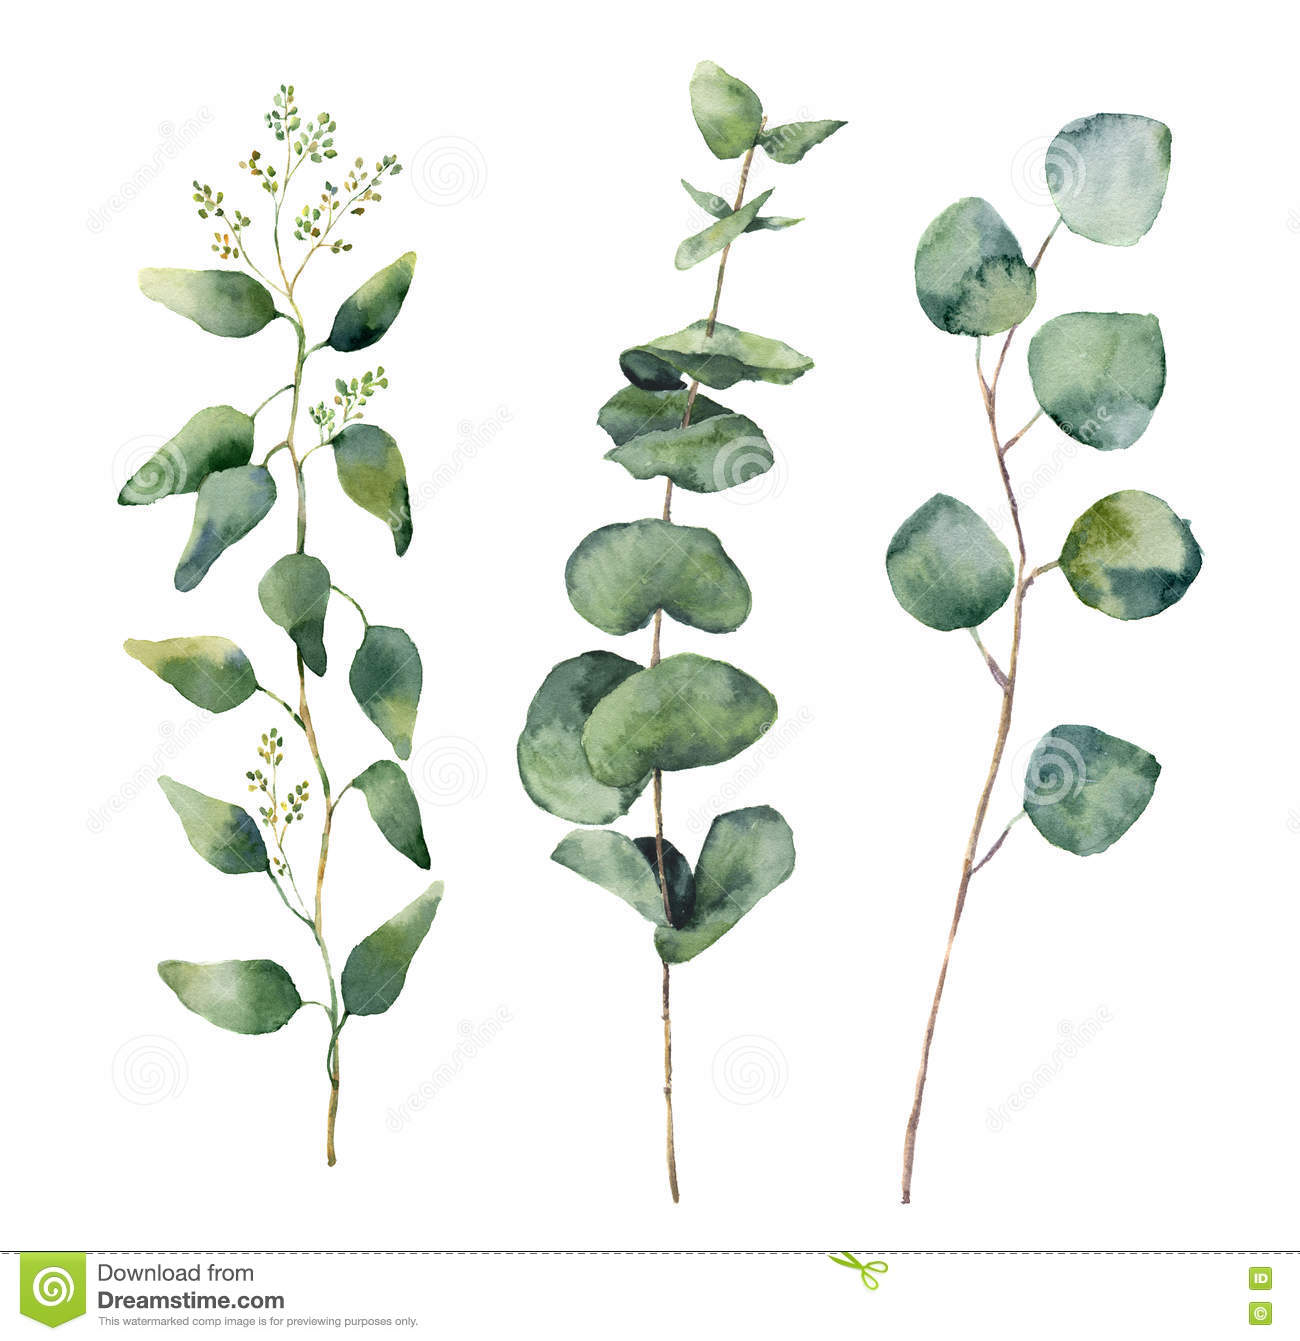 Eucalyptus clipart #4, Download drawings